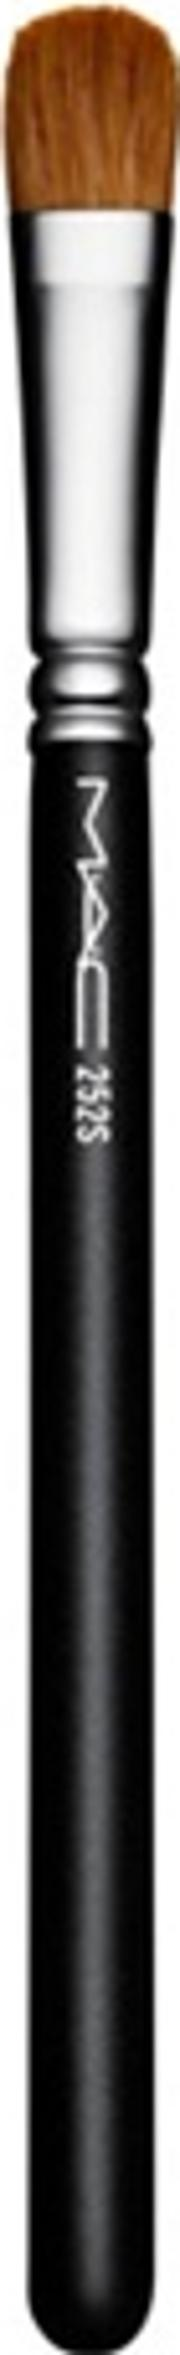 Cosmetics Large Shader Brush No. 252s